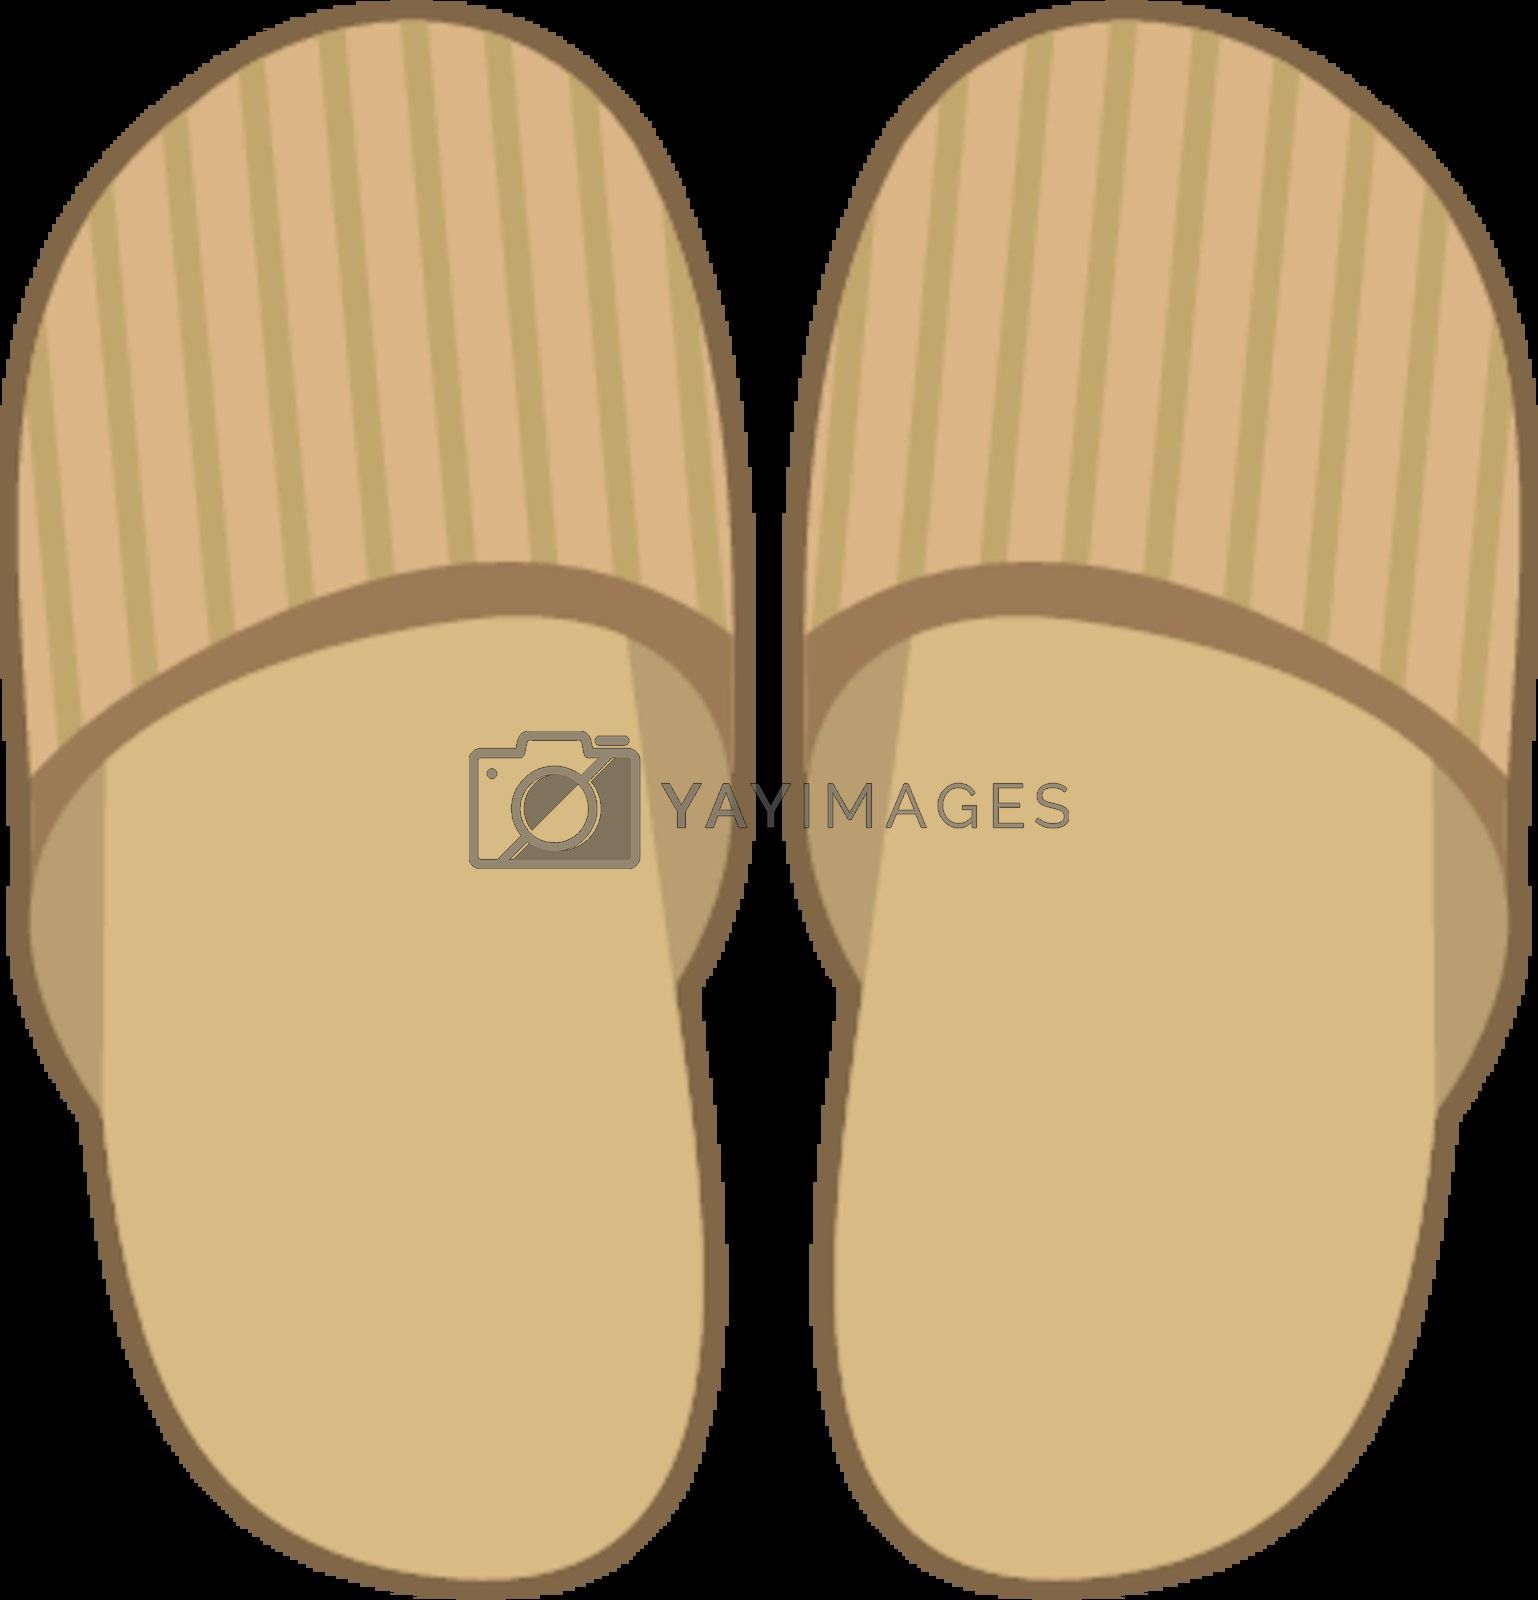 Royalty free image of Slippers by Perysty